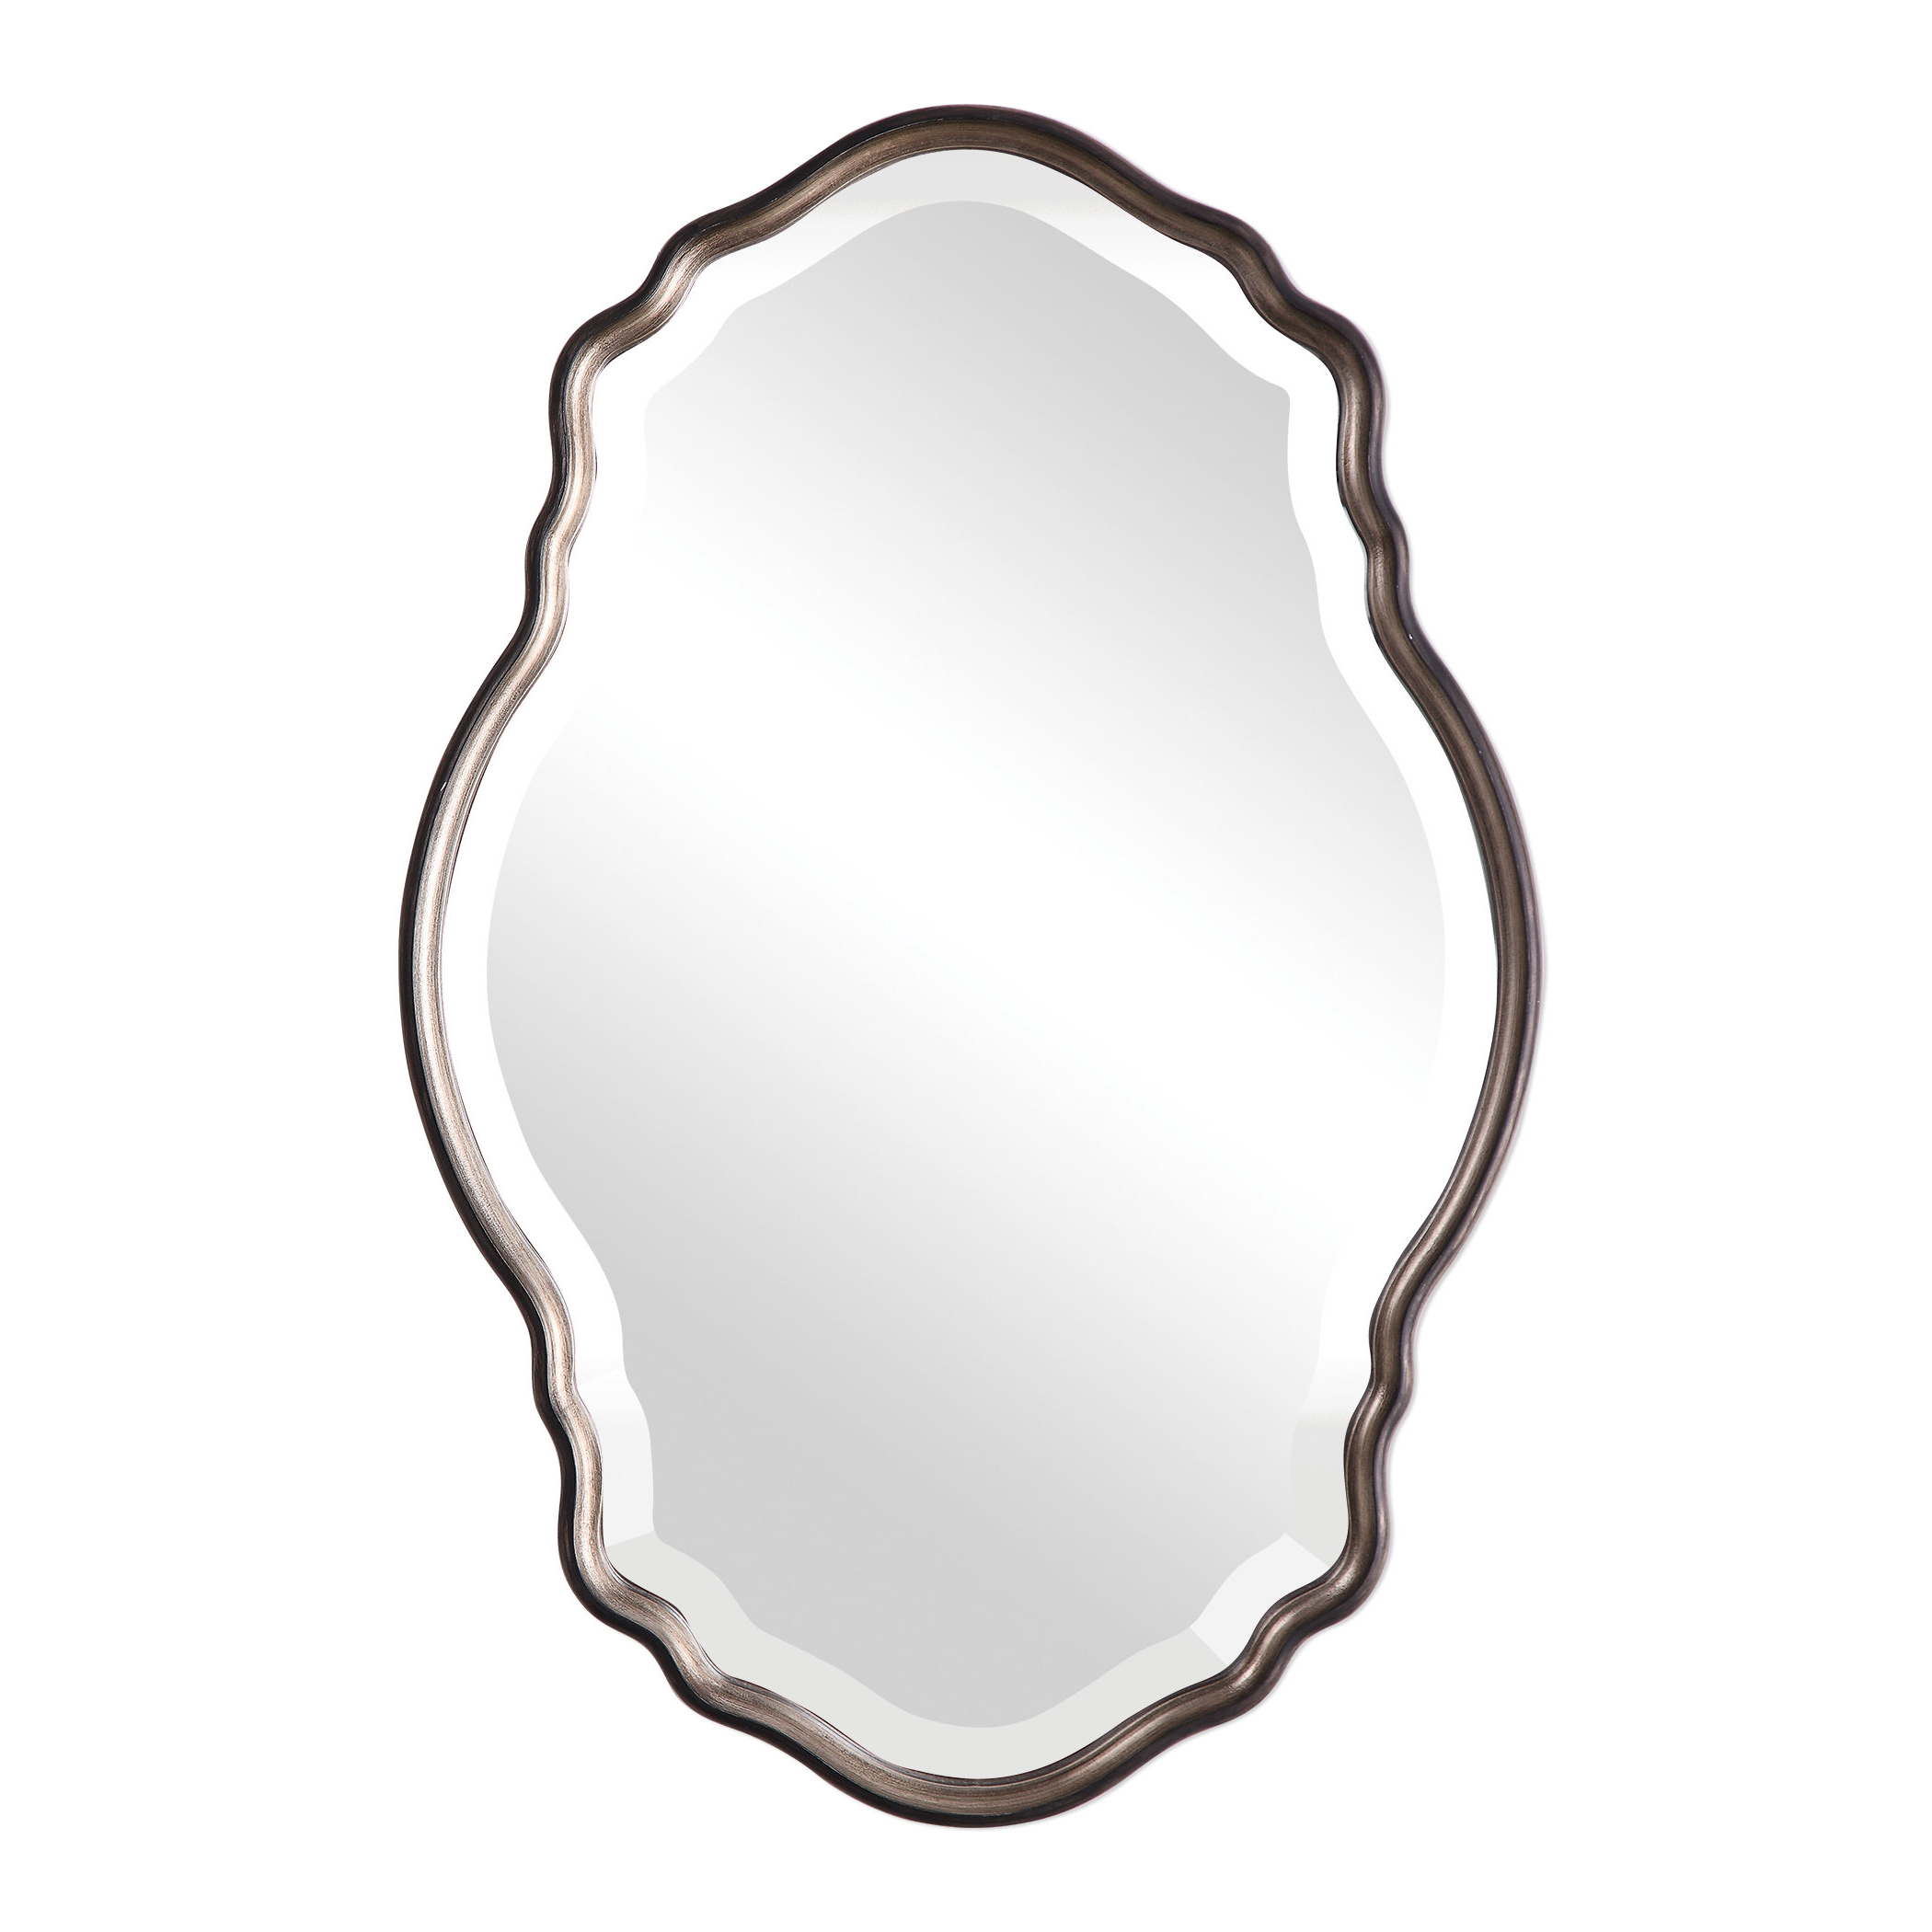 Preferred Modern & Contemporary Beveled Wall Mirrors Regarding Christner Modern & Contemporary Beveled Wall Mirror (View 17 of 20)